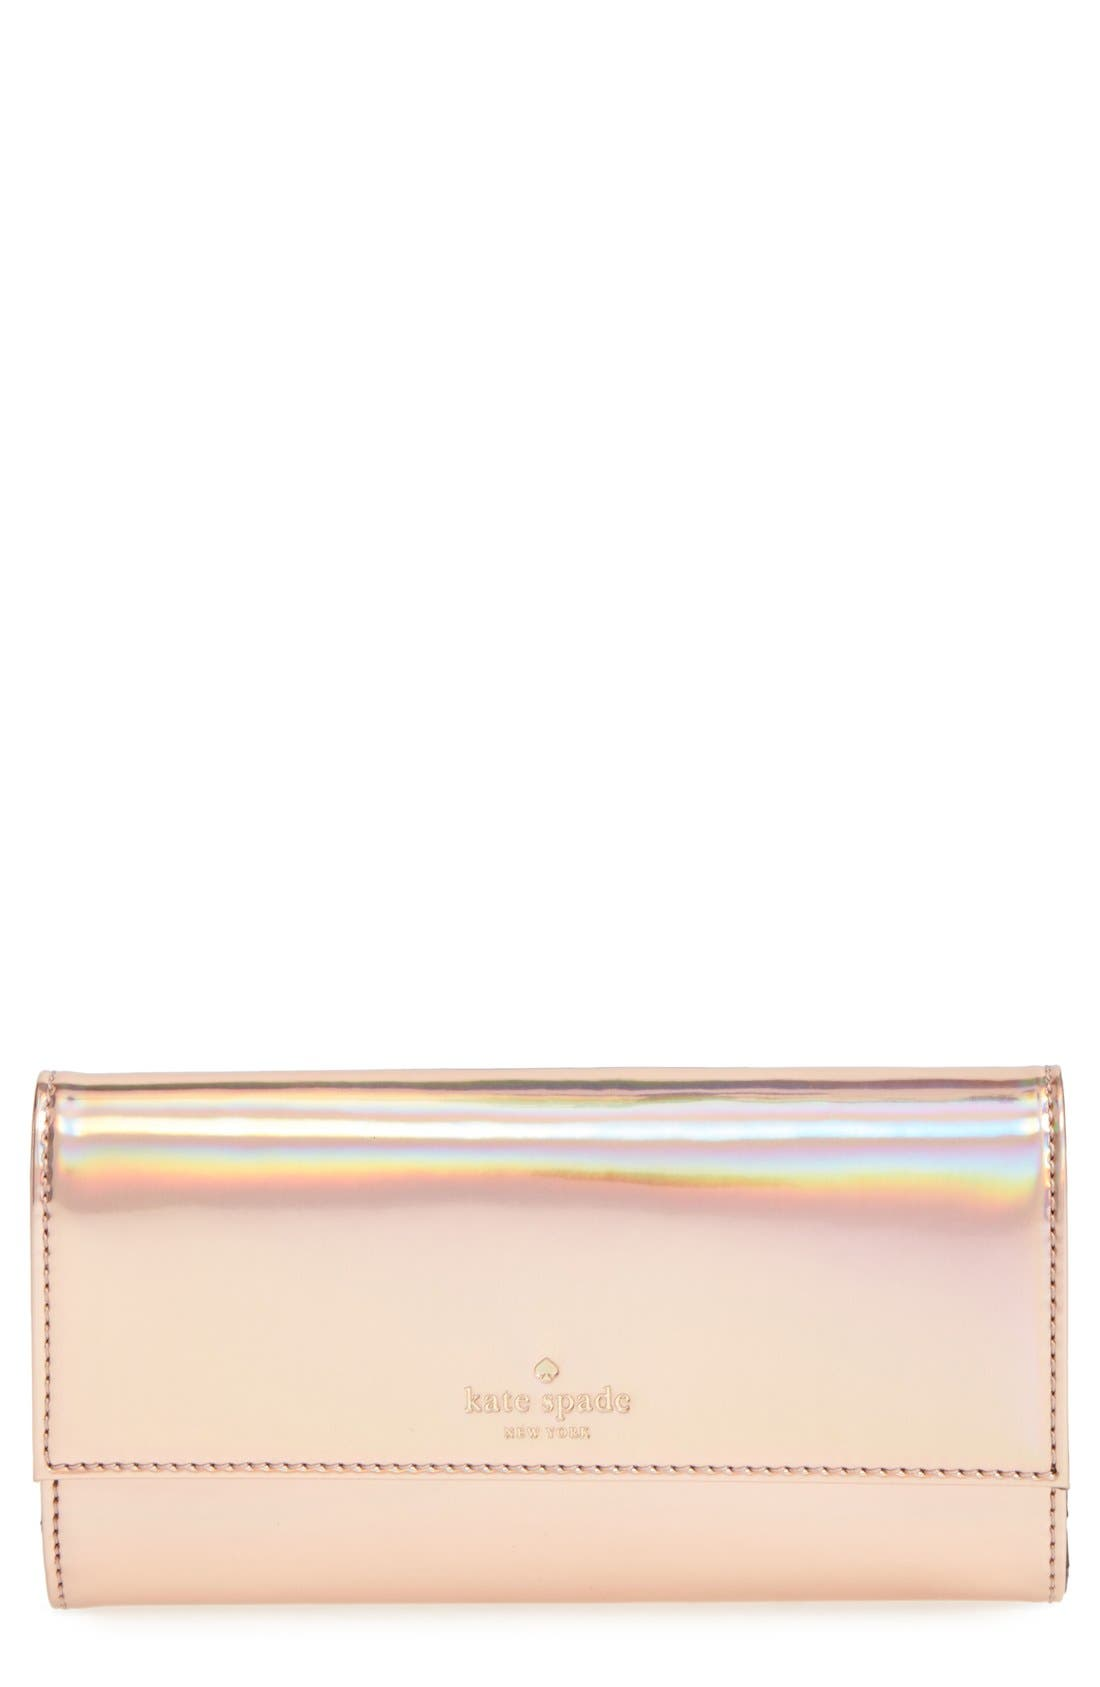 Main Image - kate spade new york iPhone 6 & 6s wallet & case